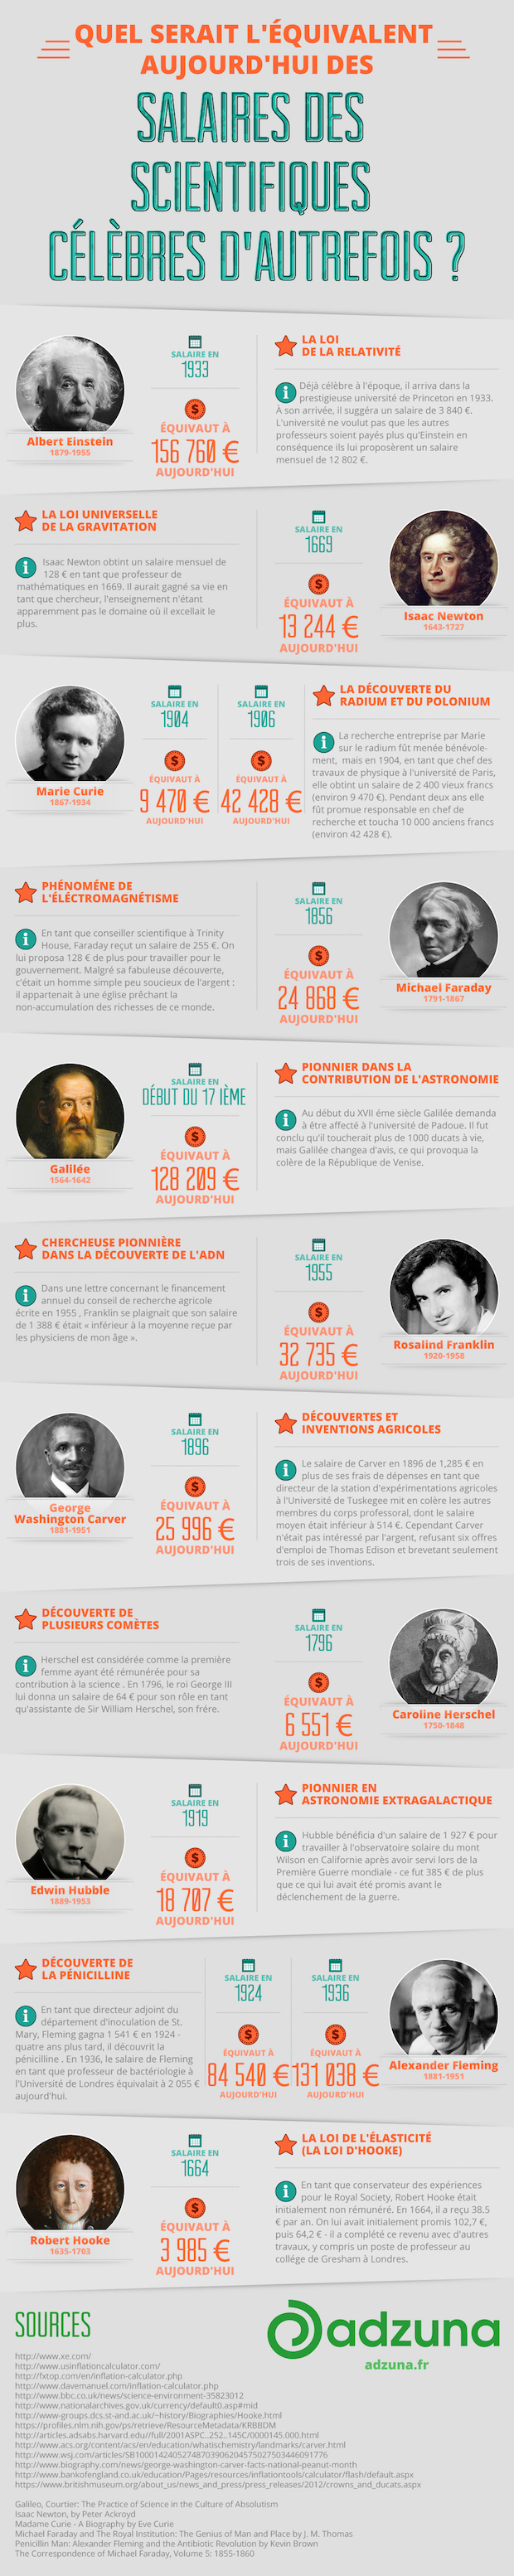 Modern-Day-Salaries-of-Famous-Scientists-from-History-FR